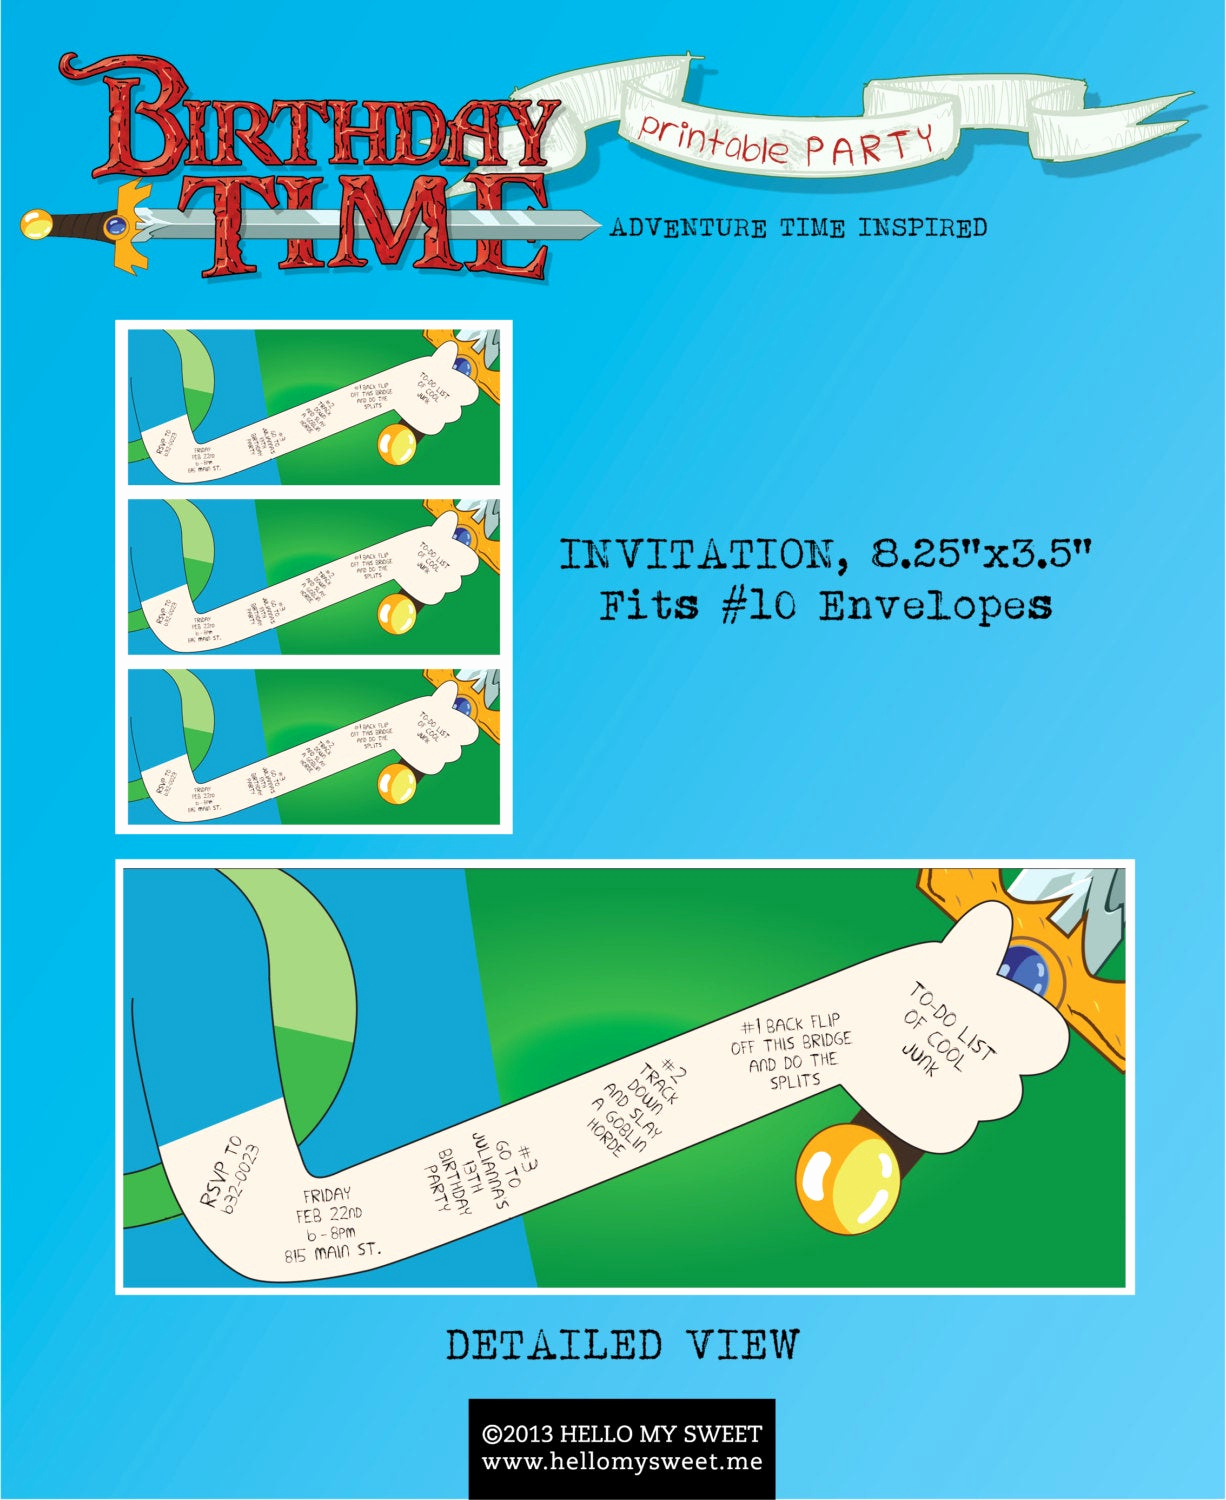 Adventure Time the Invitation Unique Adventure Time Party Invitation Party Printable Decorations